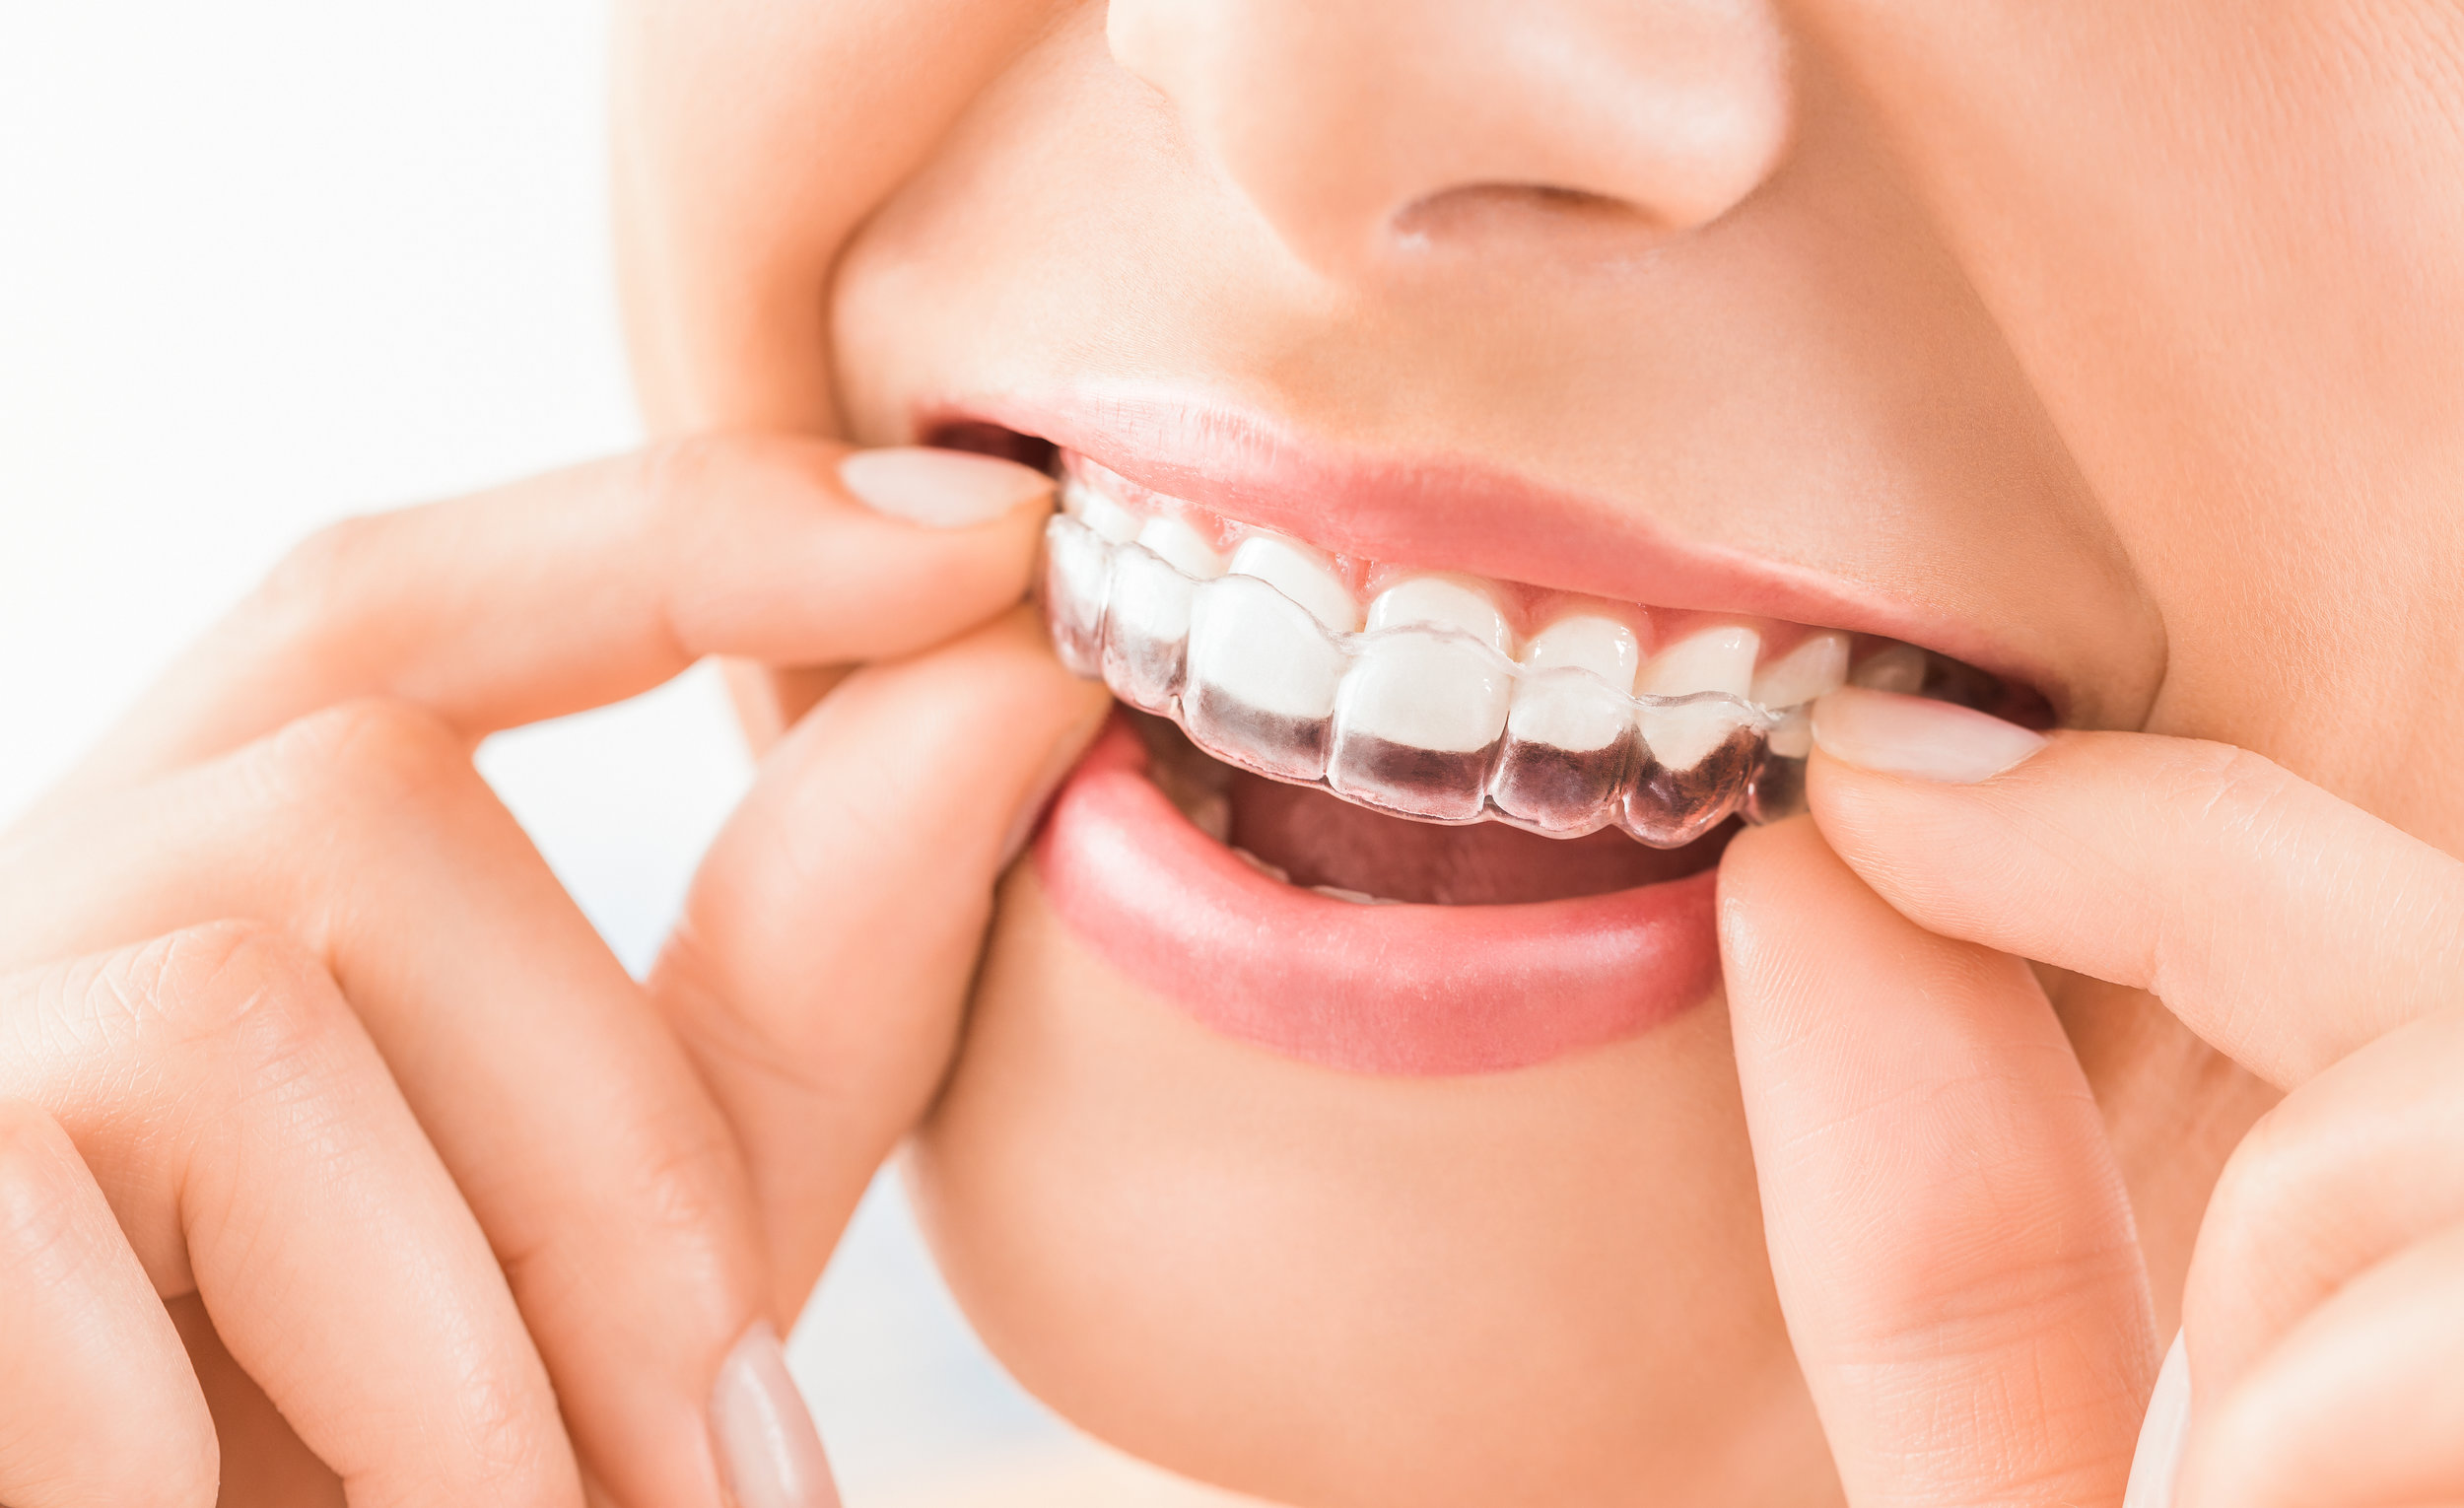 Smilelign case (worth up to £975) – which includes the initial treatment plan and scan, the number of aligners necessary to complete the case, a dedicated technician on hand to discuss your case, refinements (if and when required).